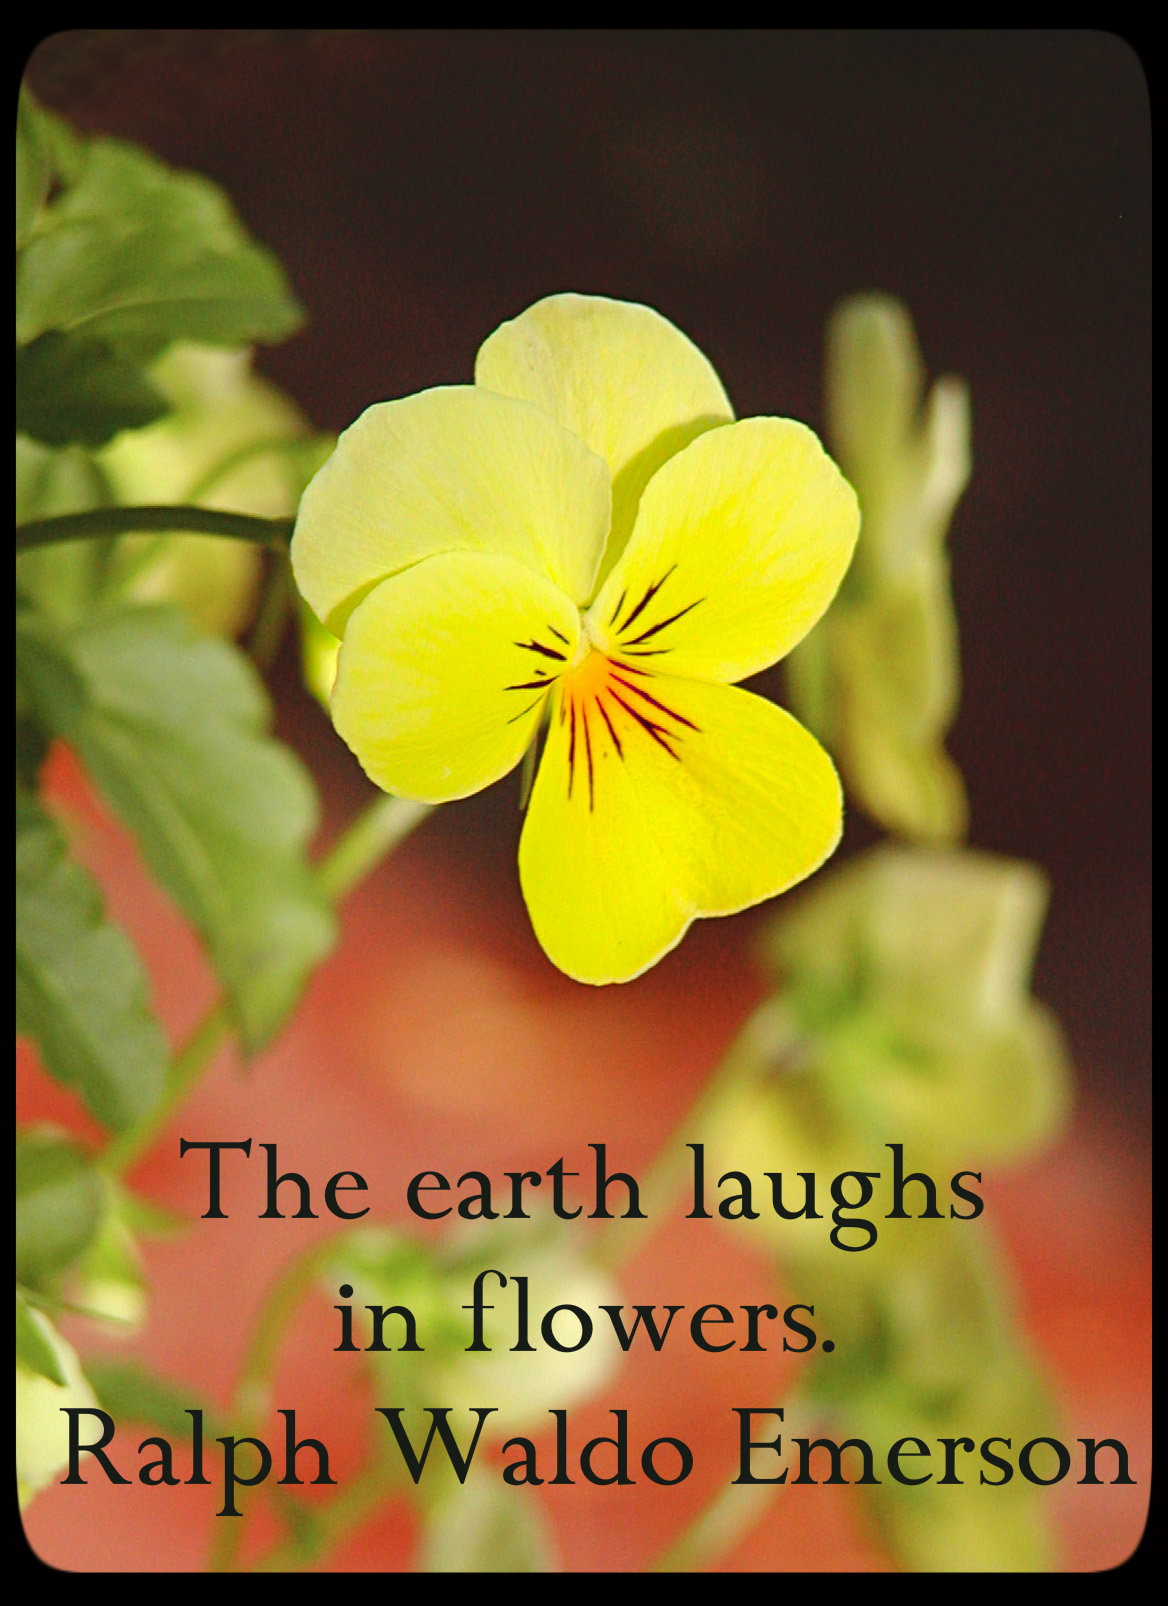 The earth laughs in flowers. ~Ralph Waldo Emerson